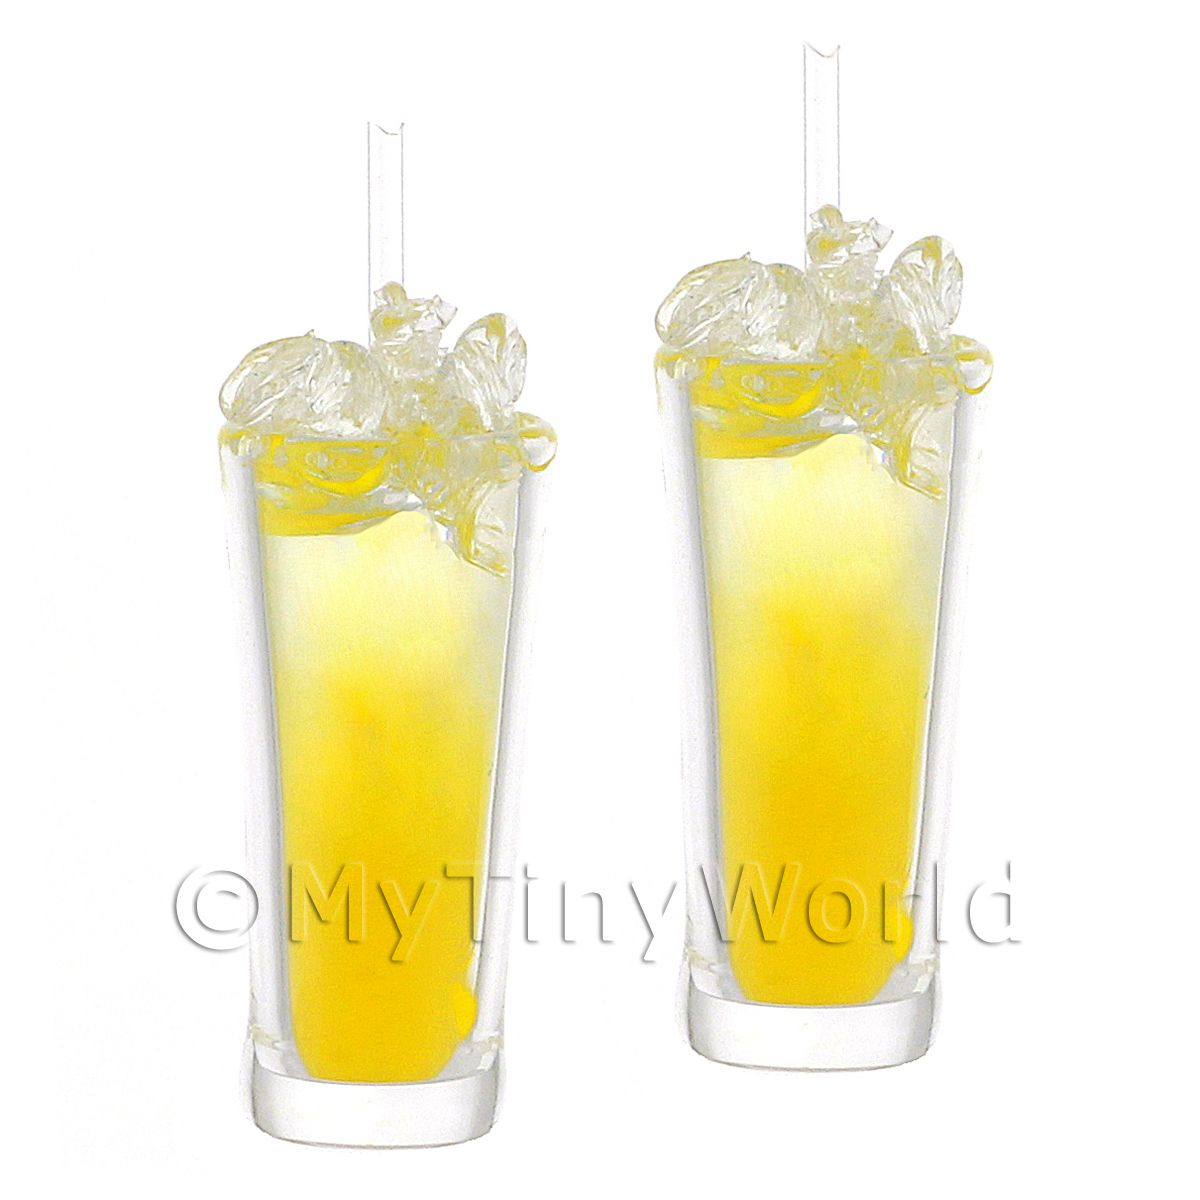 2 Miniature Yellow Bird Cocktails In Long Glasses